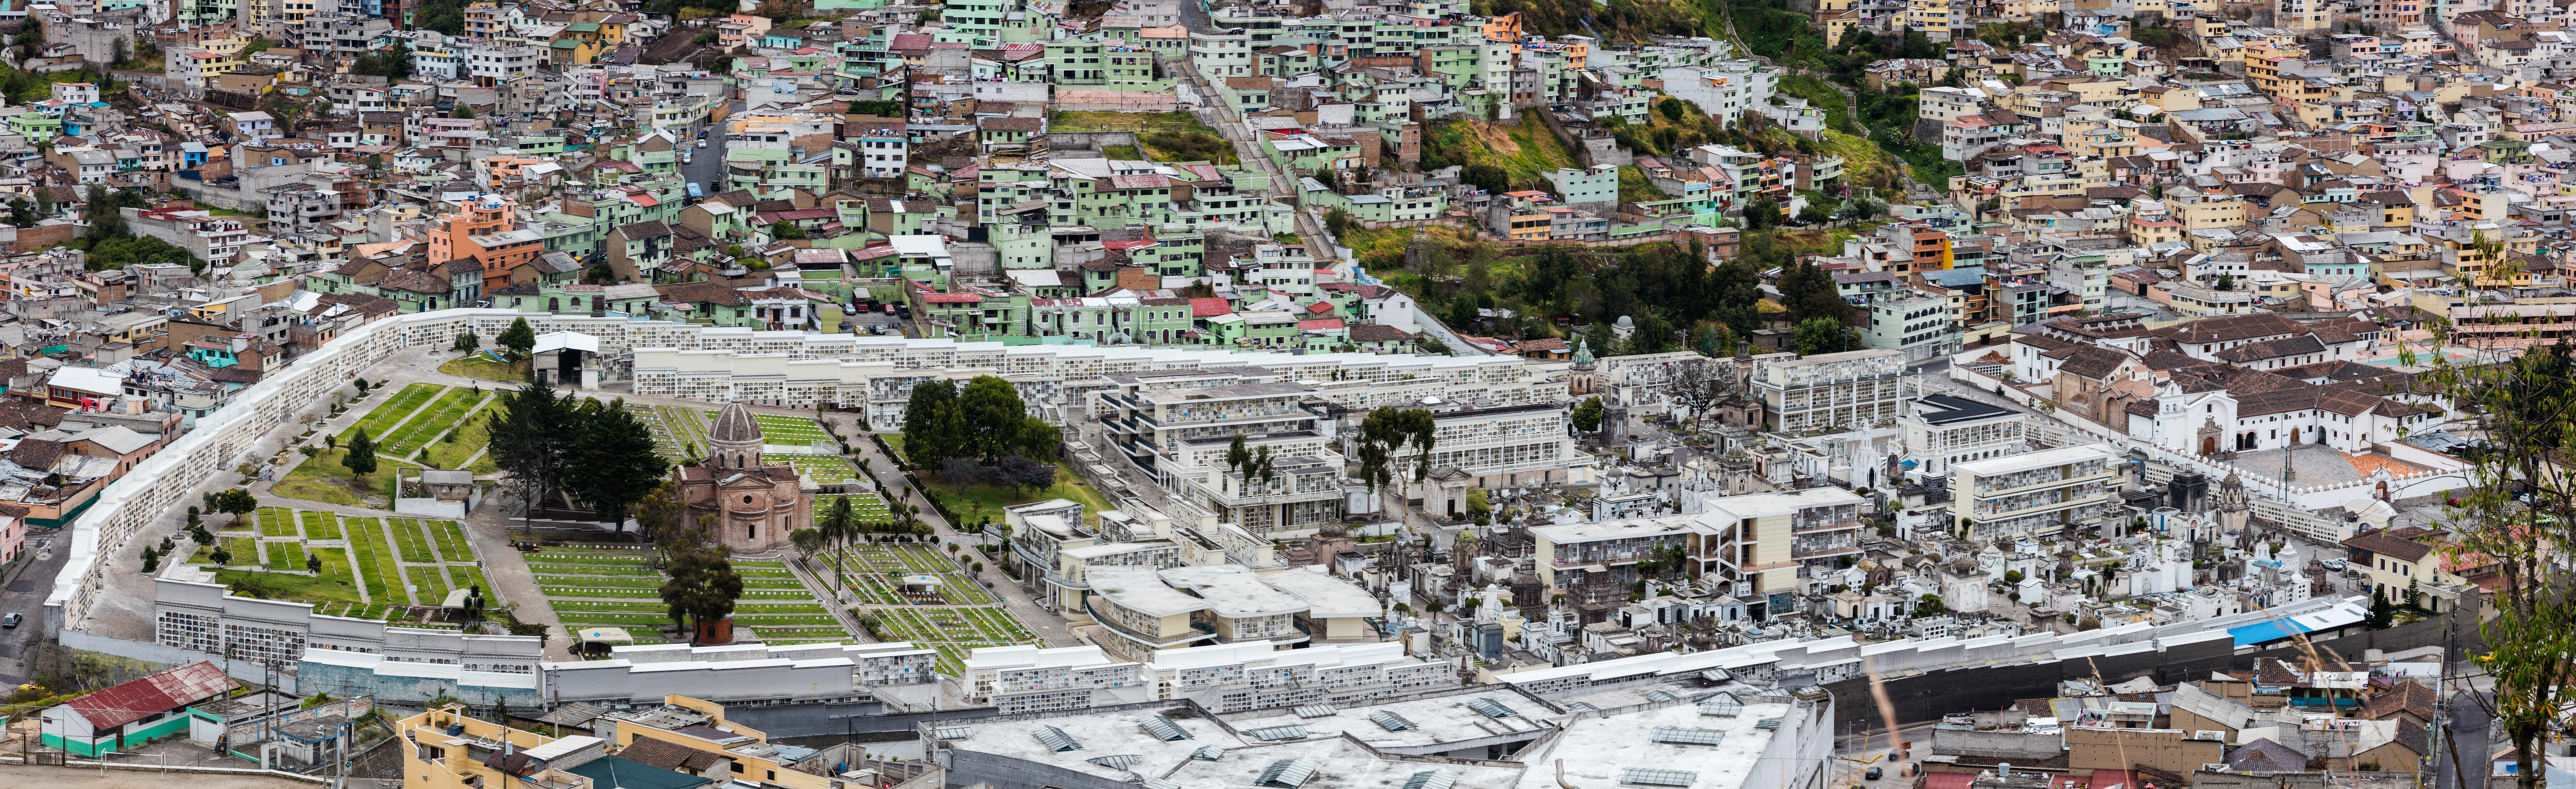 The Cemetery Of San Diego, Seen From El Panecillo, Is Located In The  Historic